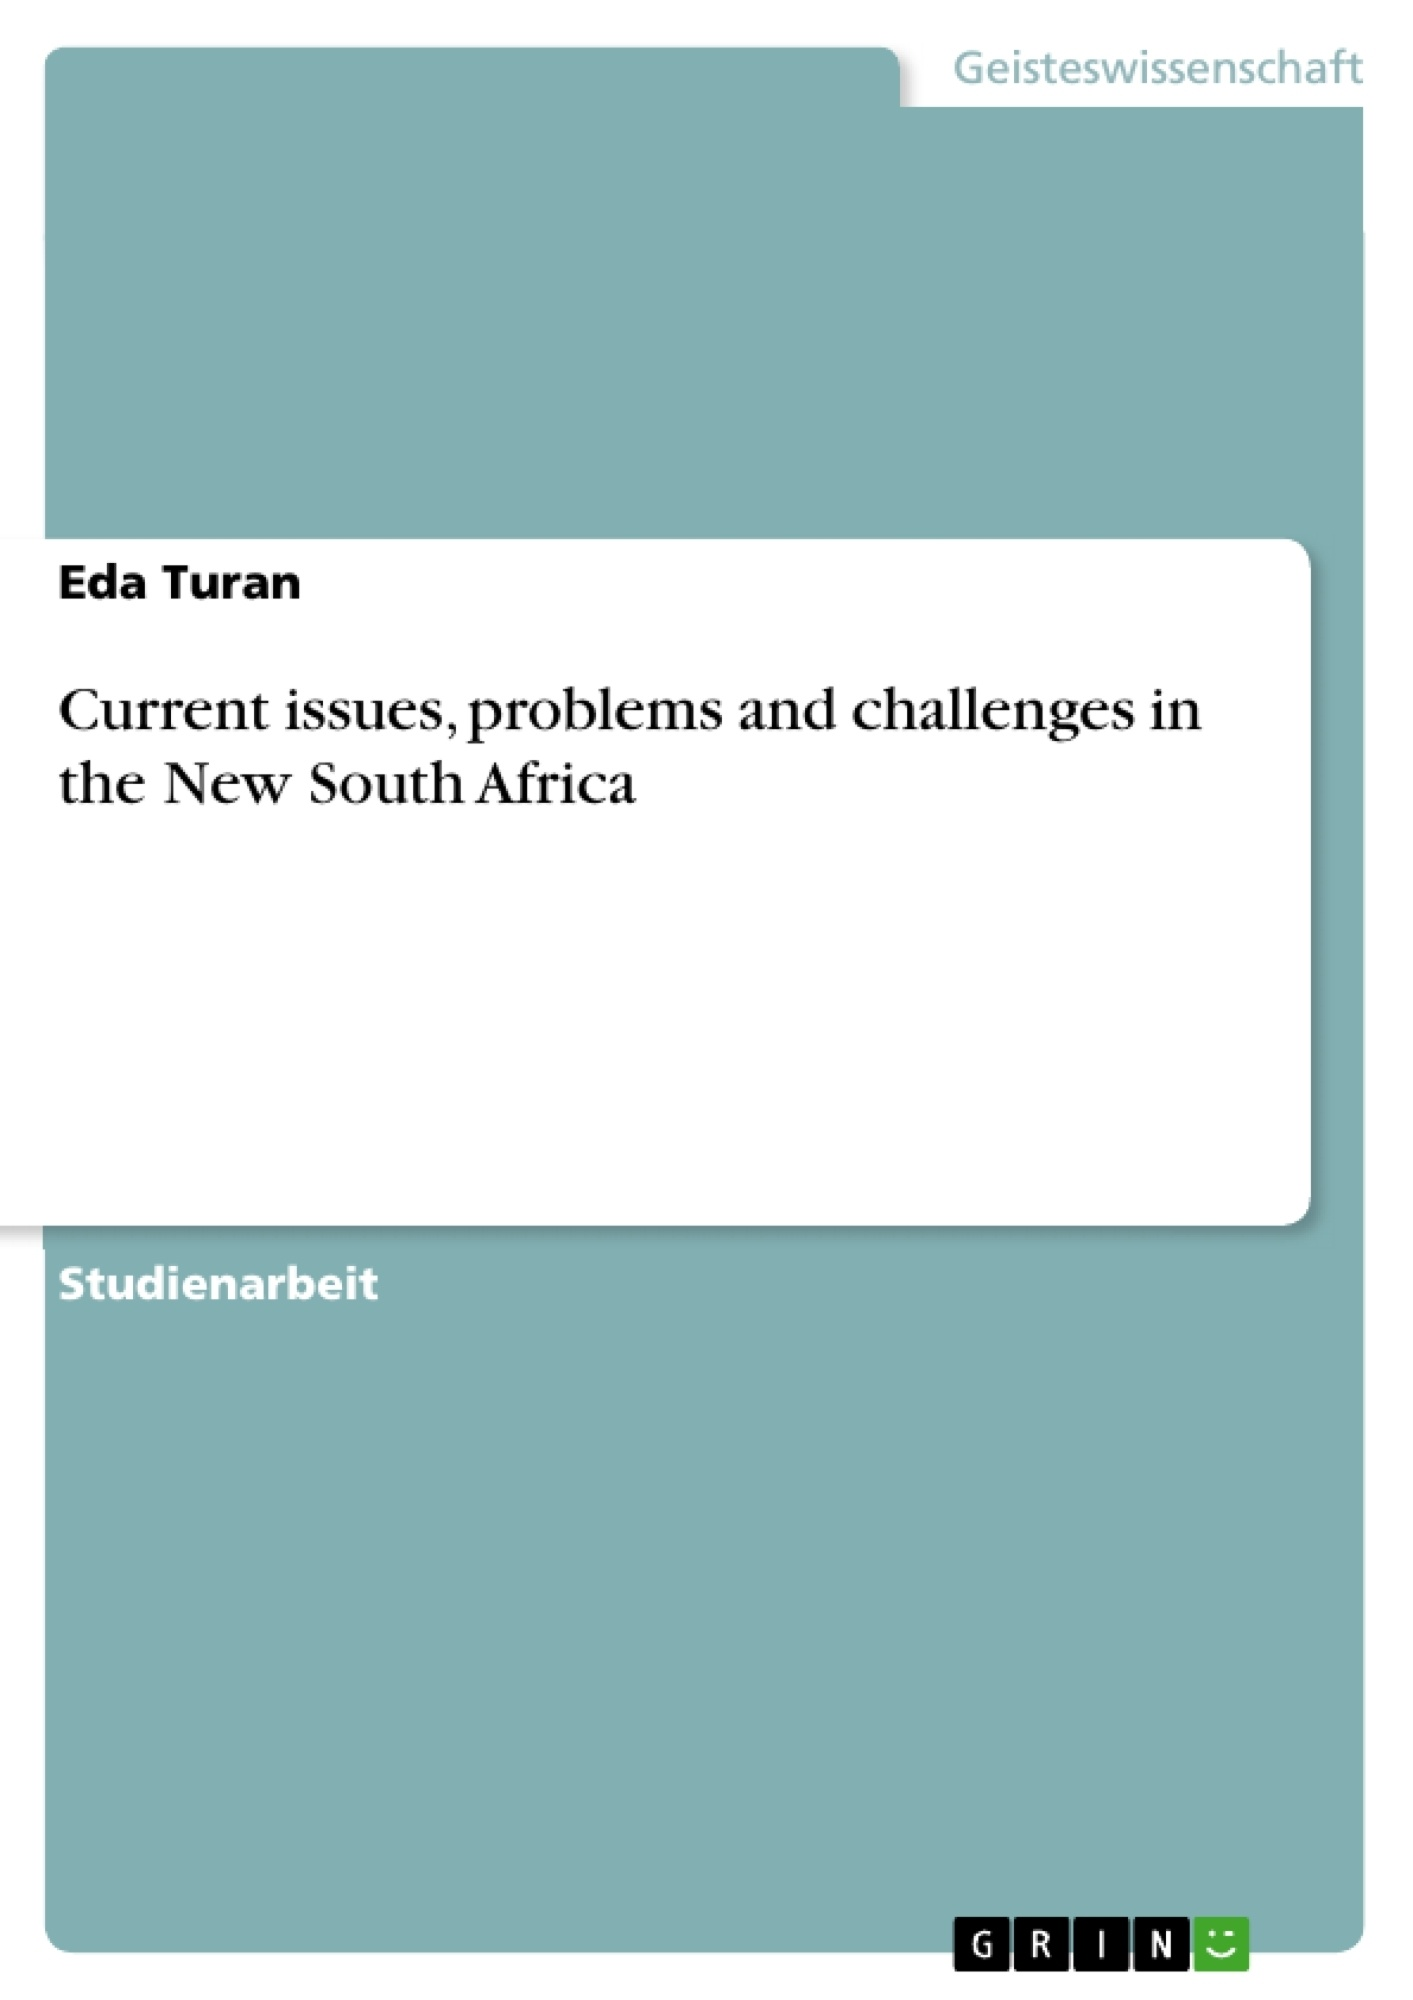 Titel: Current issues, problems and challenges in the New South Africa